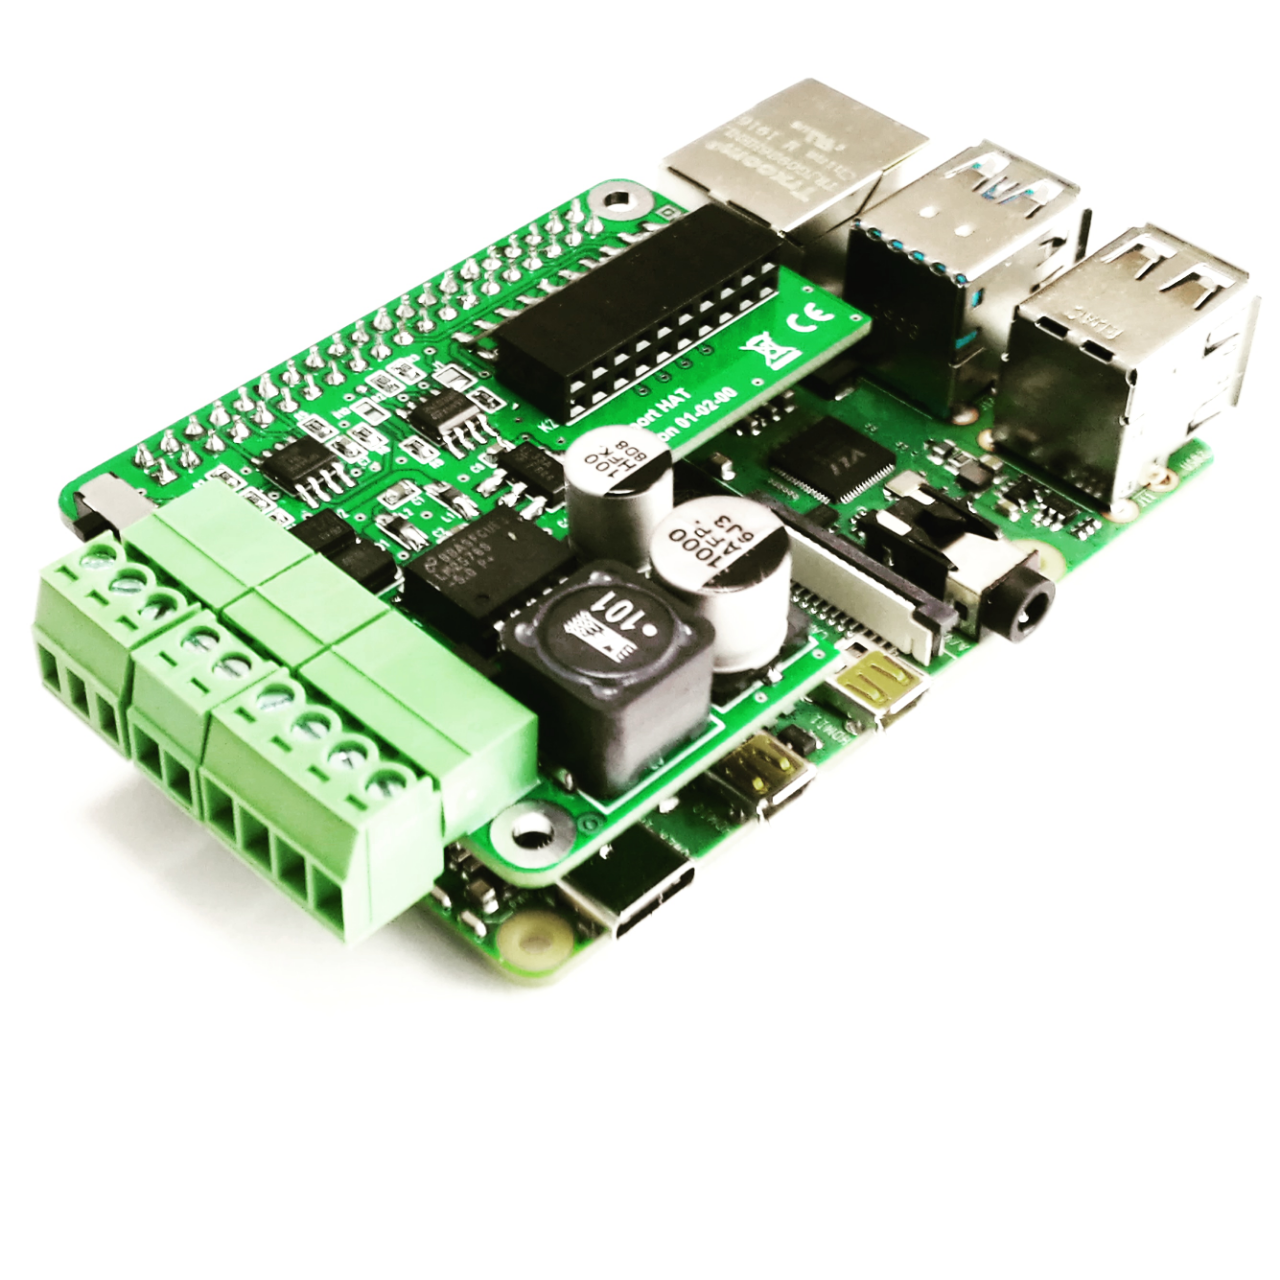 Customized Raspberry Pi HAT including power supply